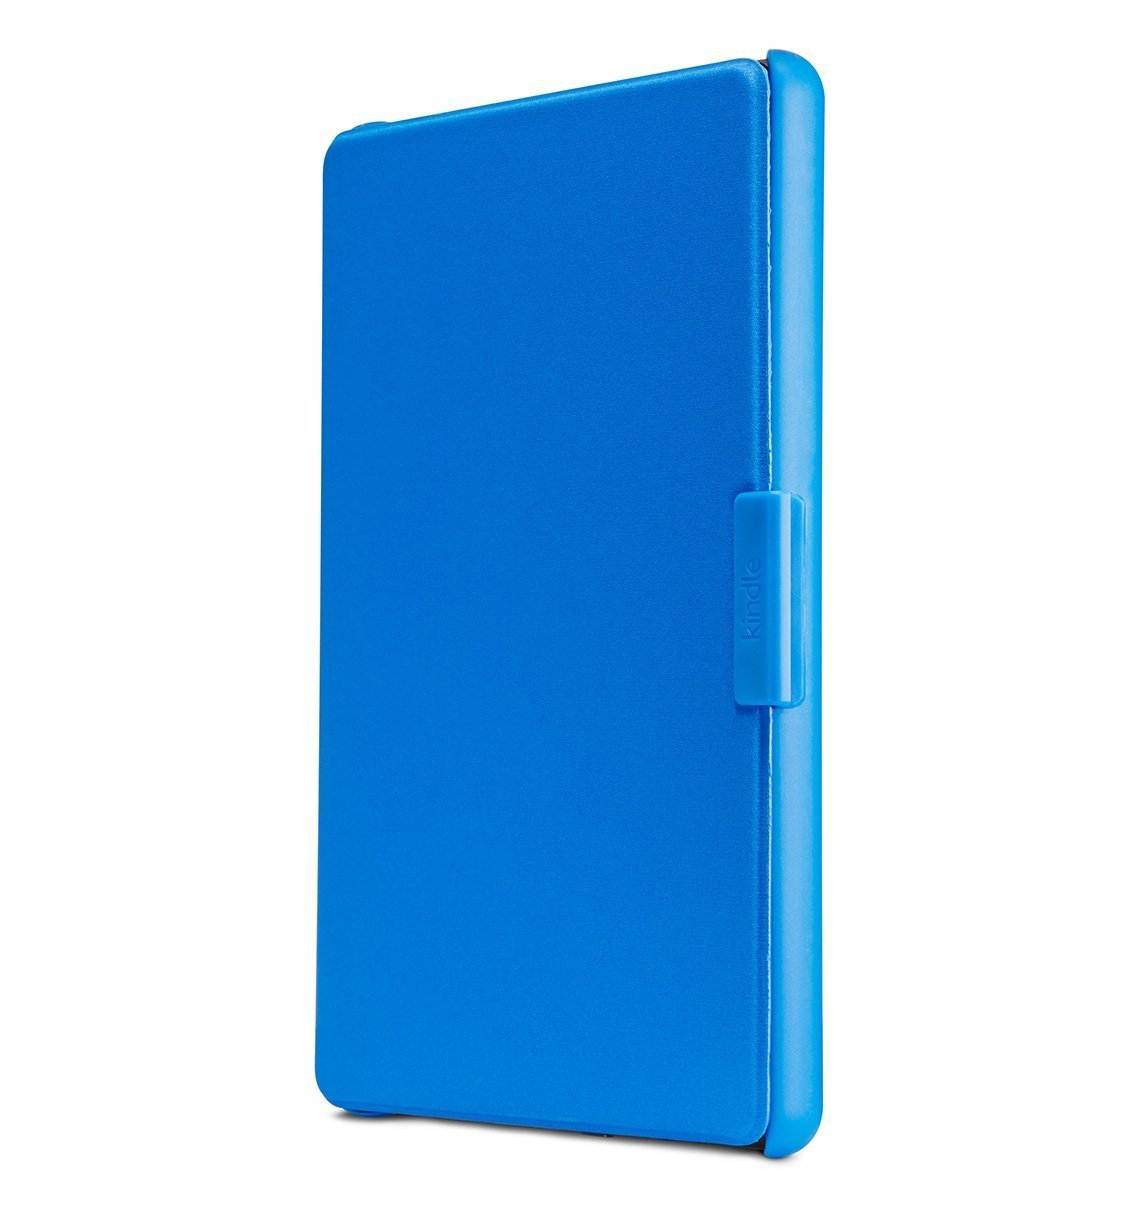 Чехол обложка Amazon Cover Case for All-New Kindle 8 (2016) Blue. Фото N4